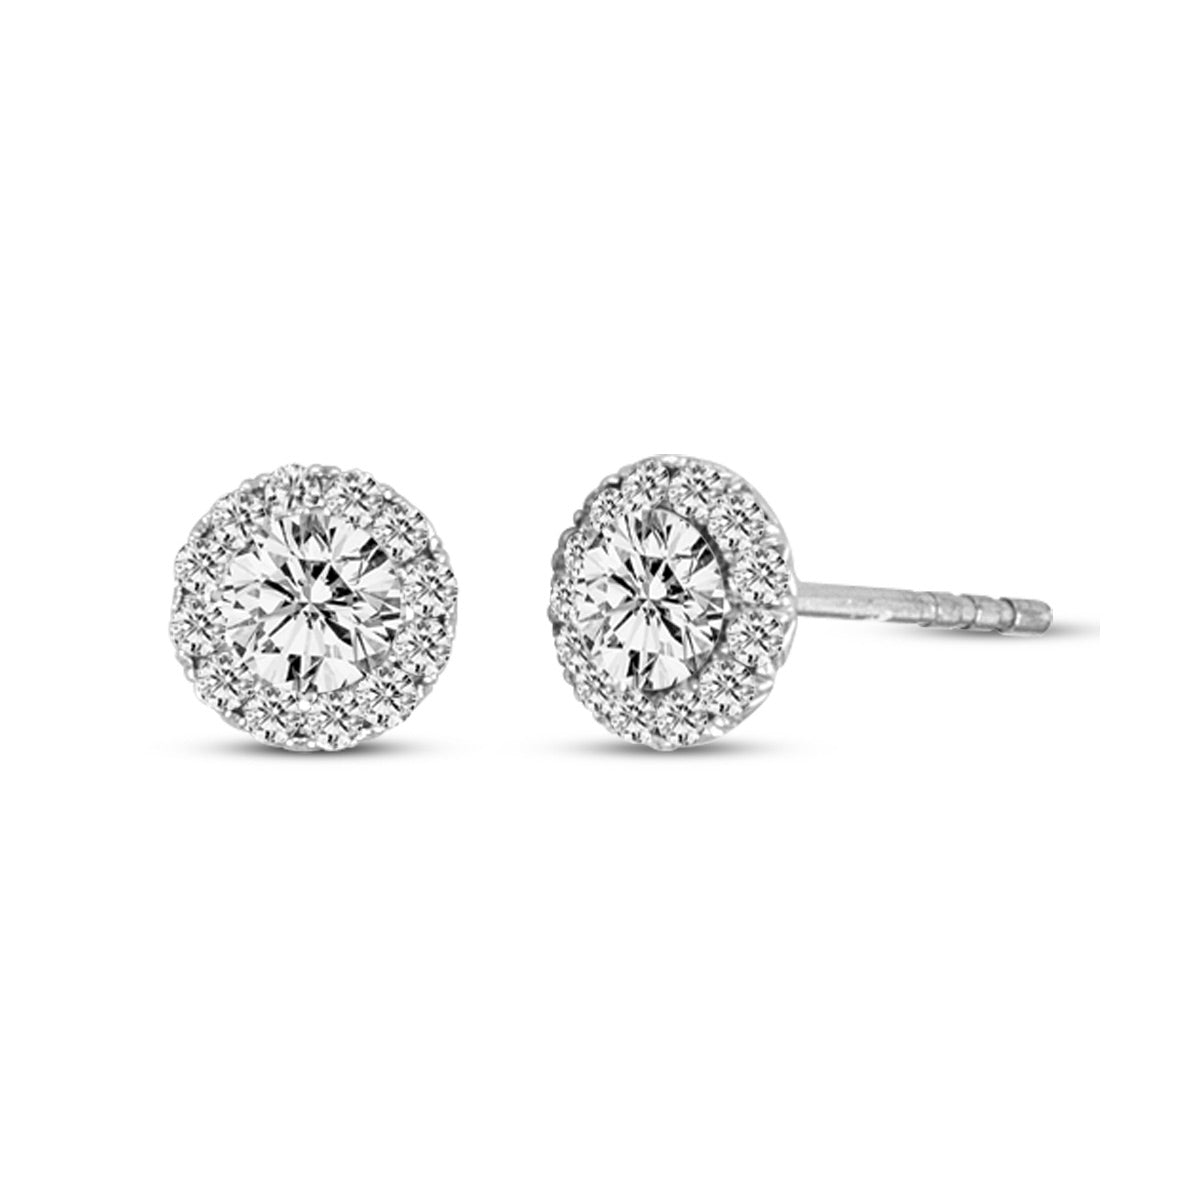 Diamond Stud Earrings With Halo, 14K White Gold